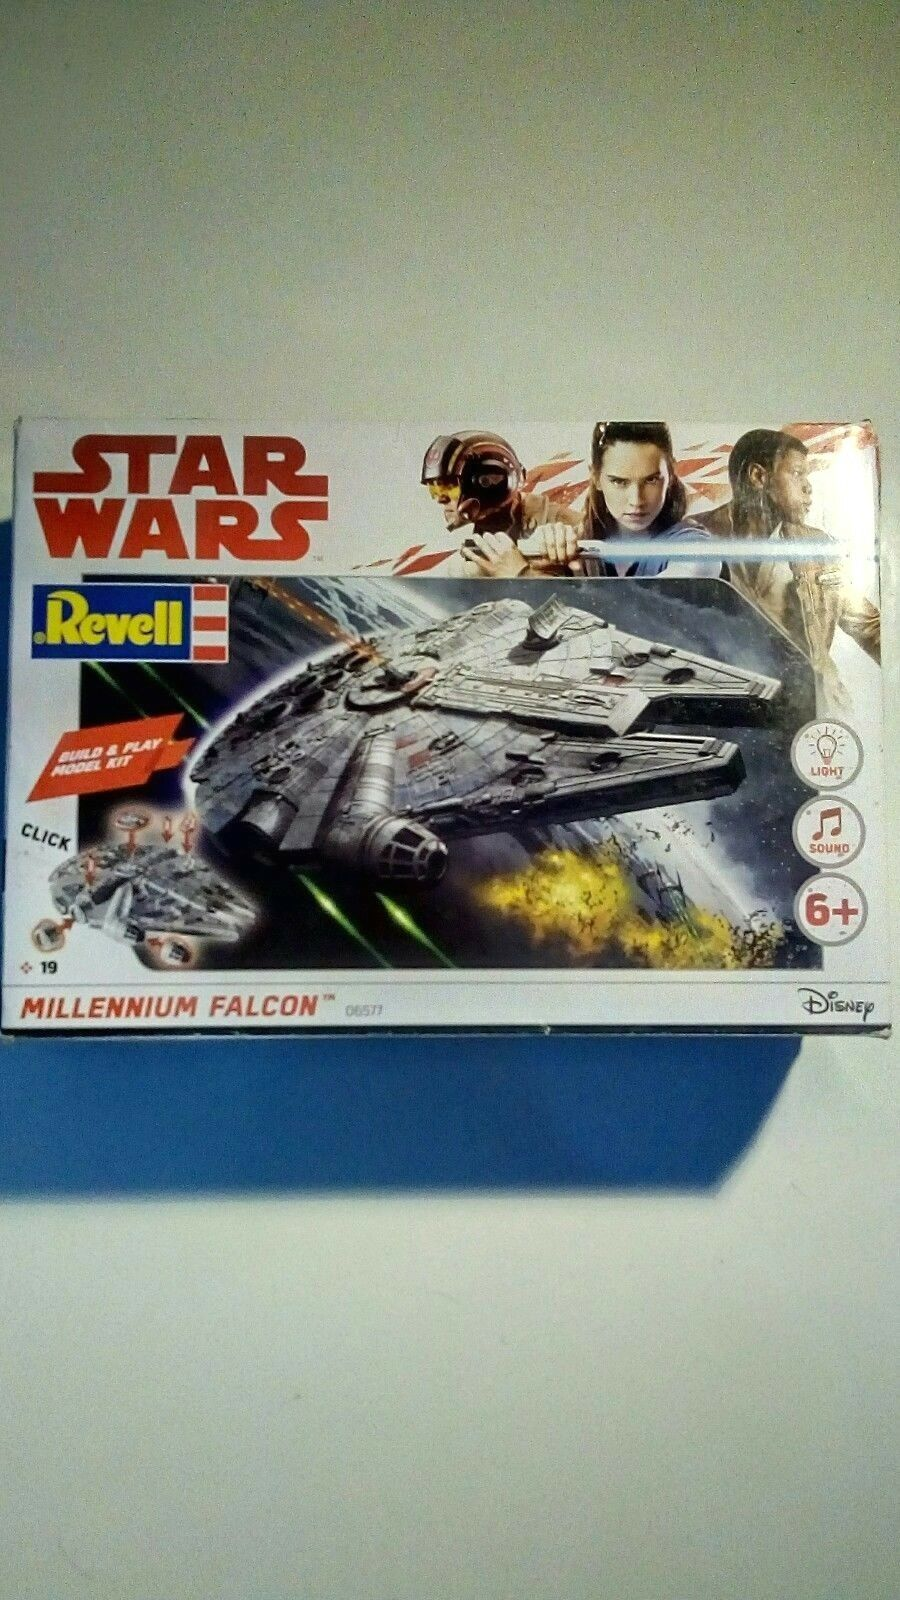 Revell Millennium Falcon 06577 Snap-Fit Model with light & sound